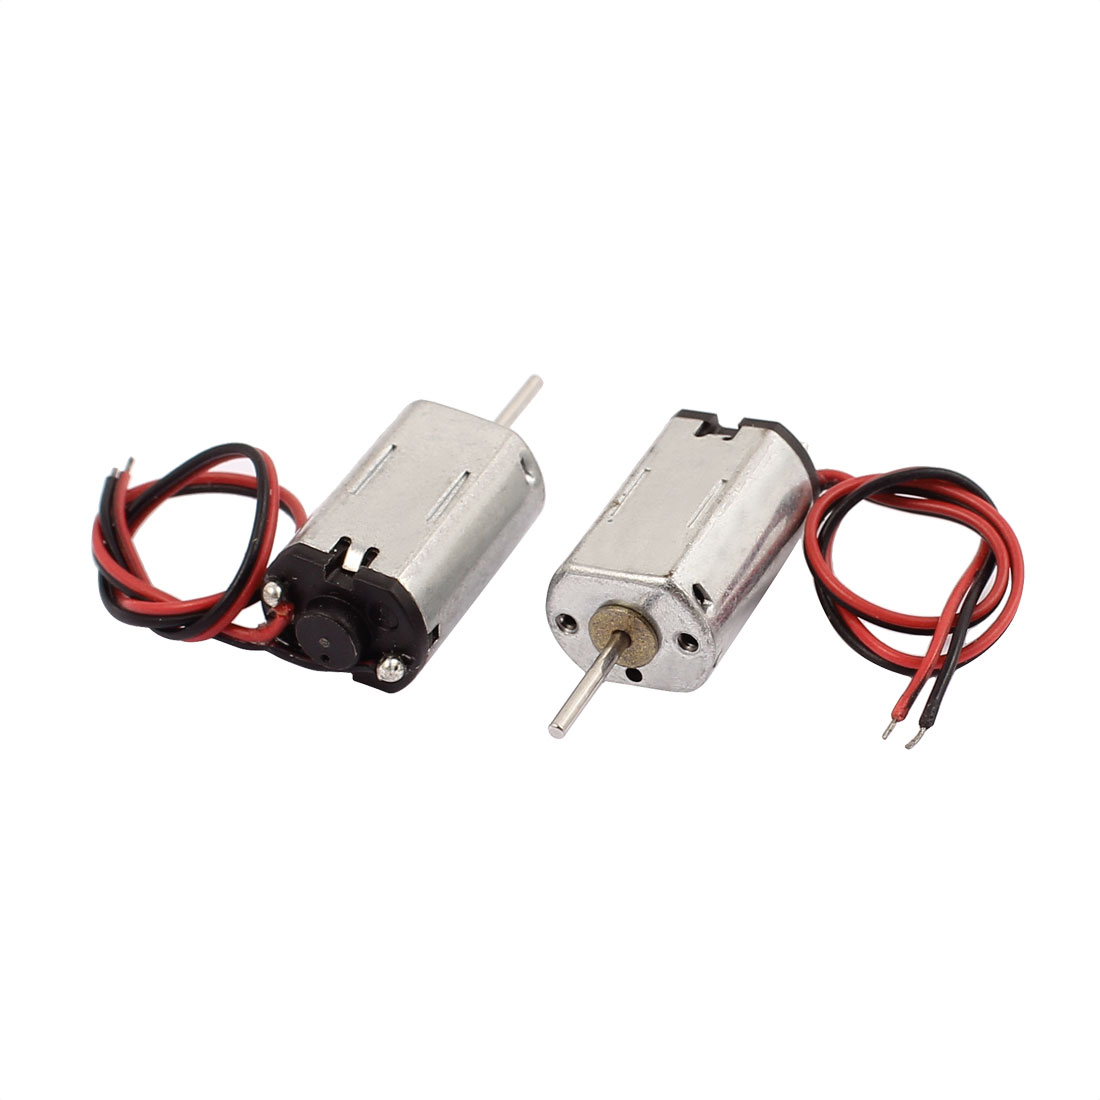 2Pcs DC 1.5-6V 21500RPM Large Torque Micro DC Motor for Electric Massage